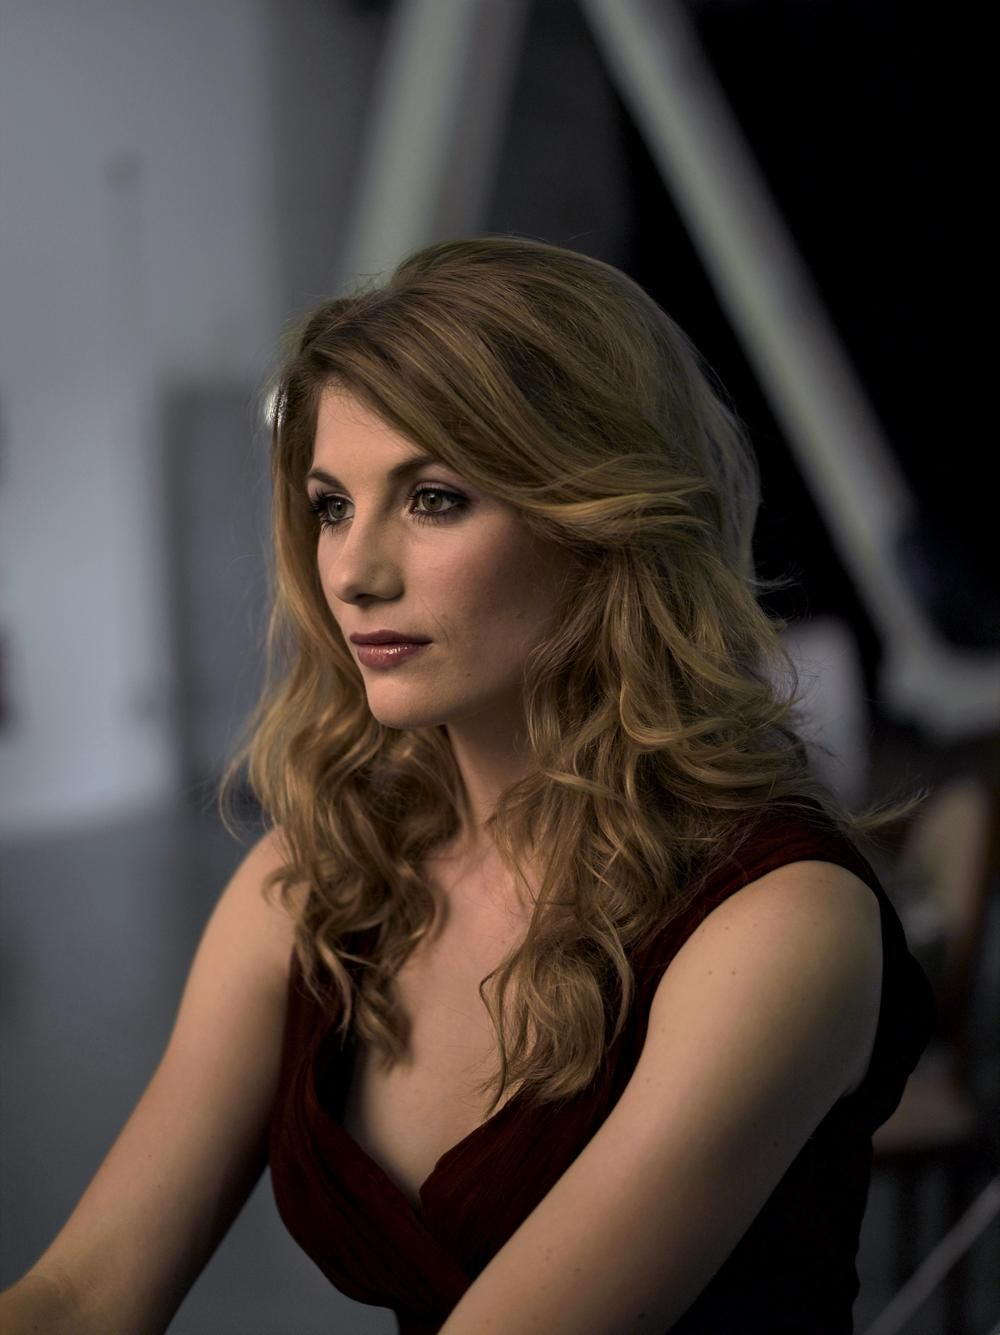 35 Hot Pictures Of Jodie Whittaker - 13Th Doctor Who-2682